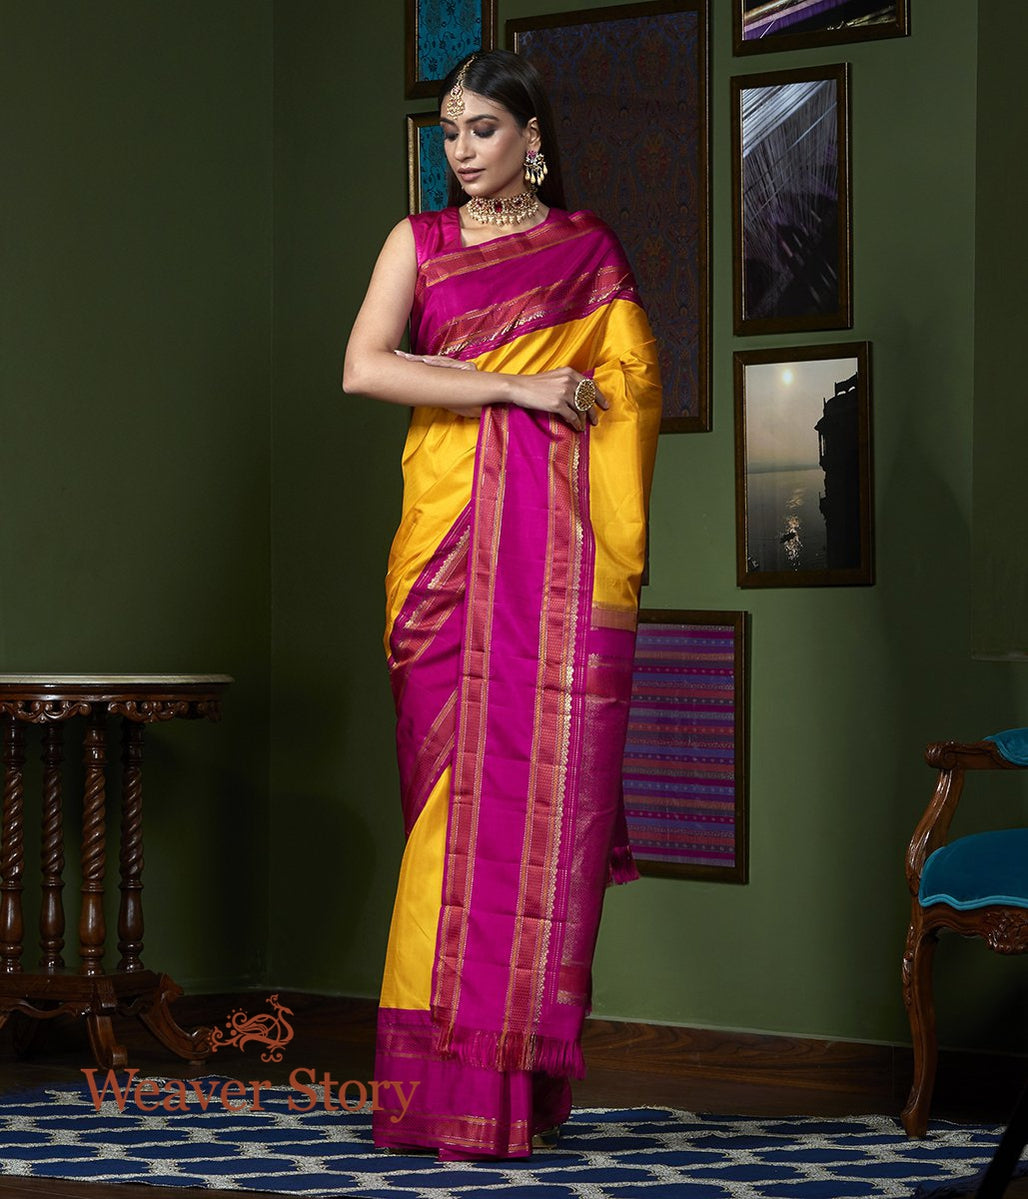 Handwoven Mustard Kanjivaram Saree with Majenta Border